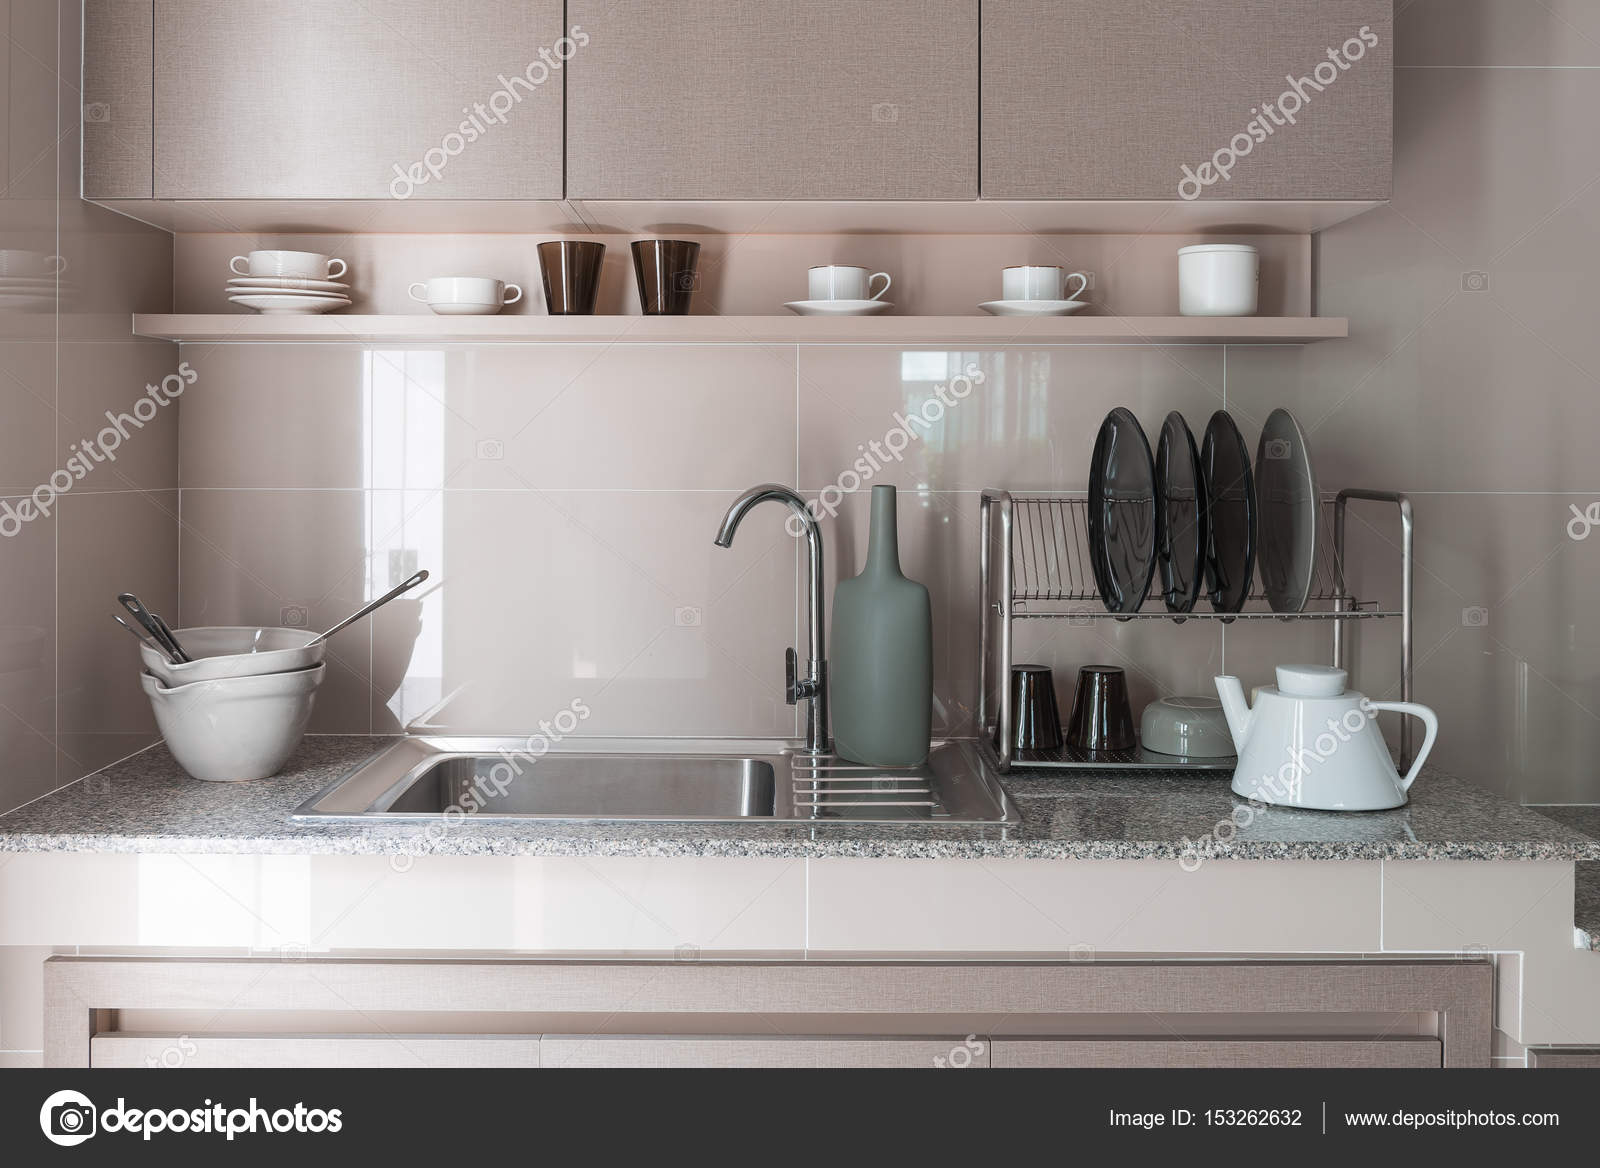 https depositphotos com 153262632 stock photo stainless steel sink with faucet html